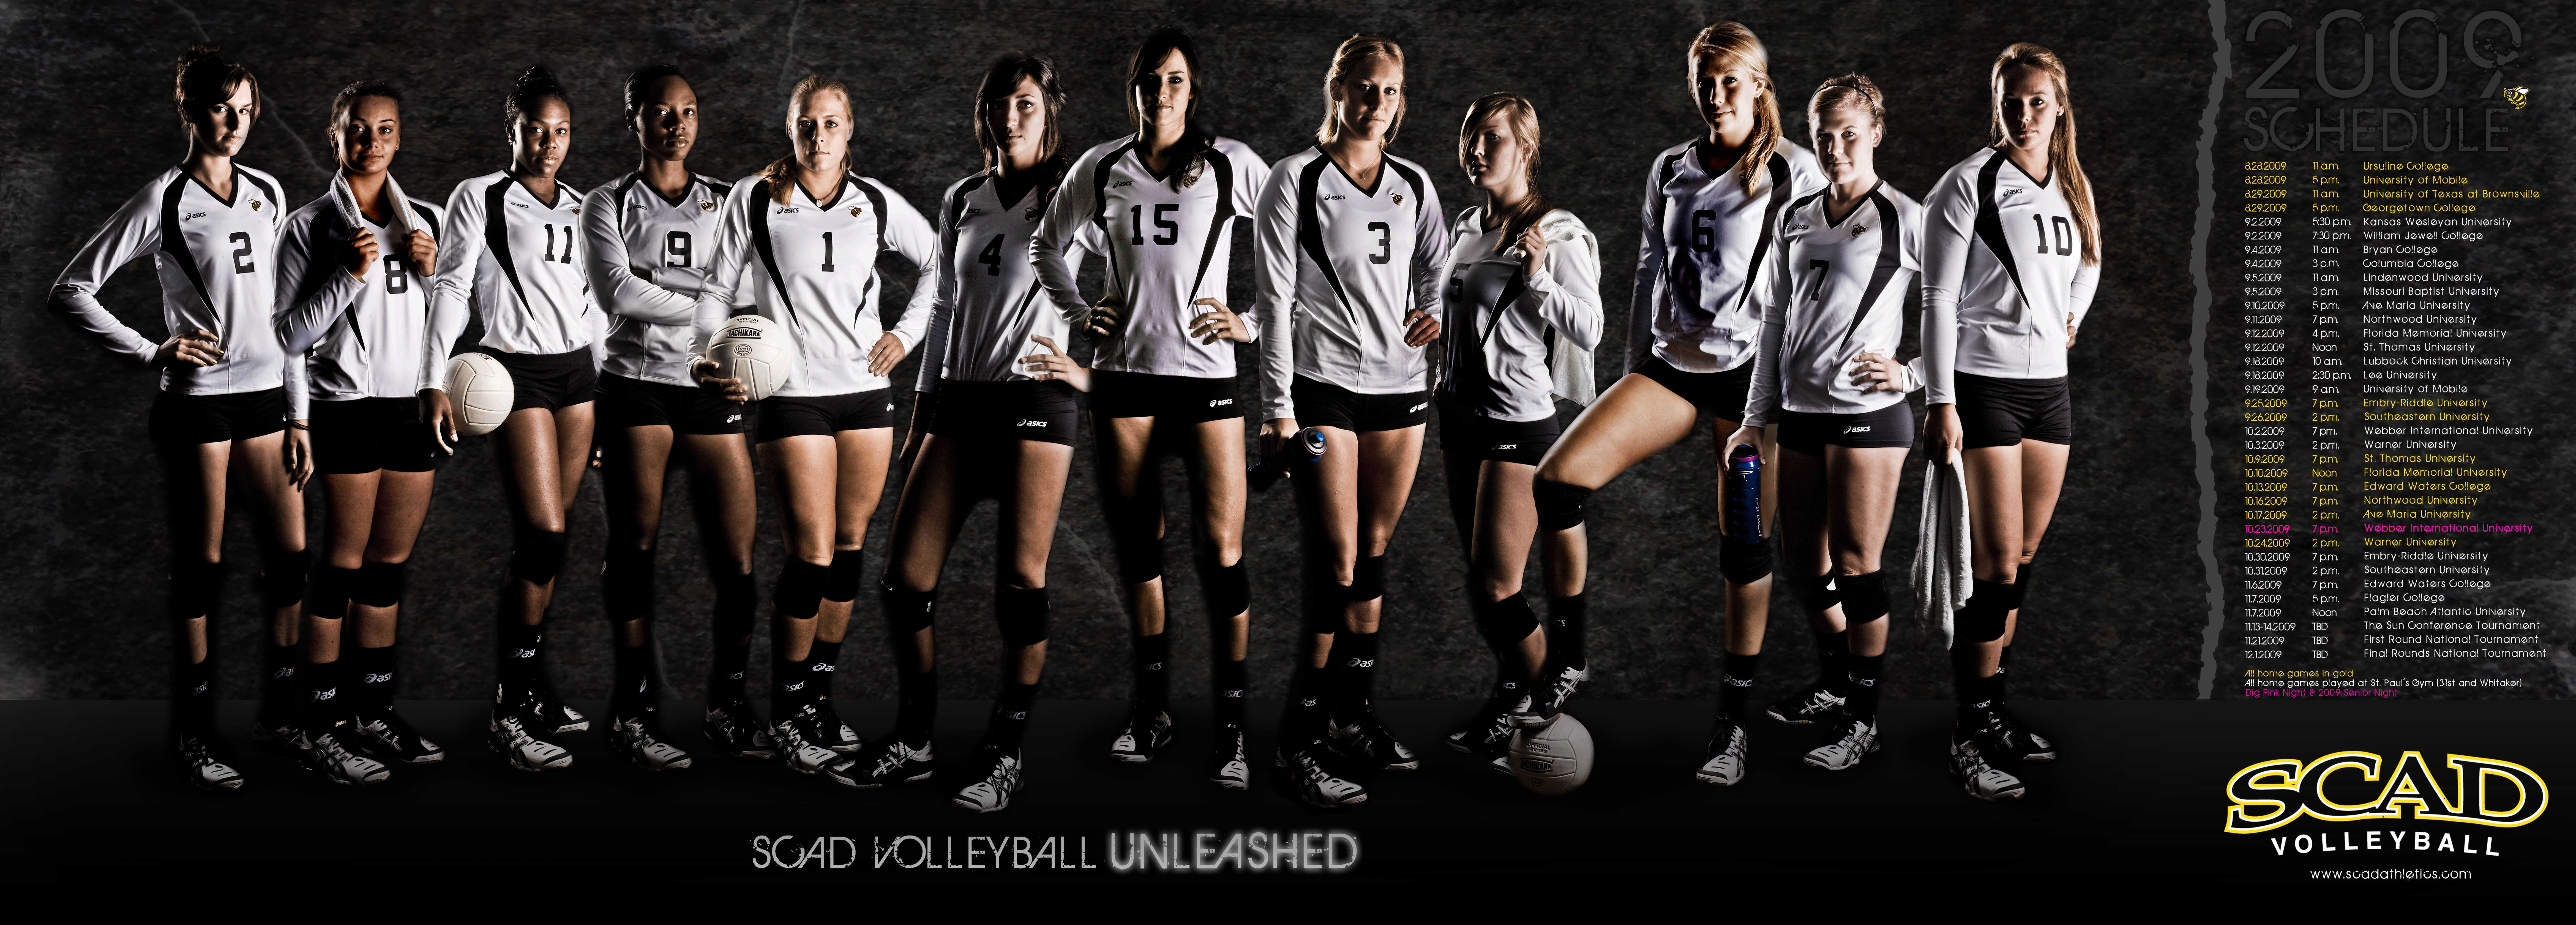 Team Quotes Volleyball Hd Photos Gallery Volleyball Team Pictures Team Quotes Volleyball Practice